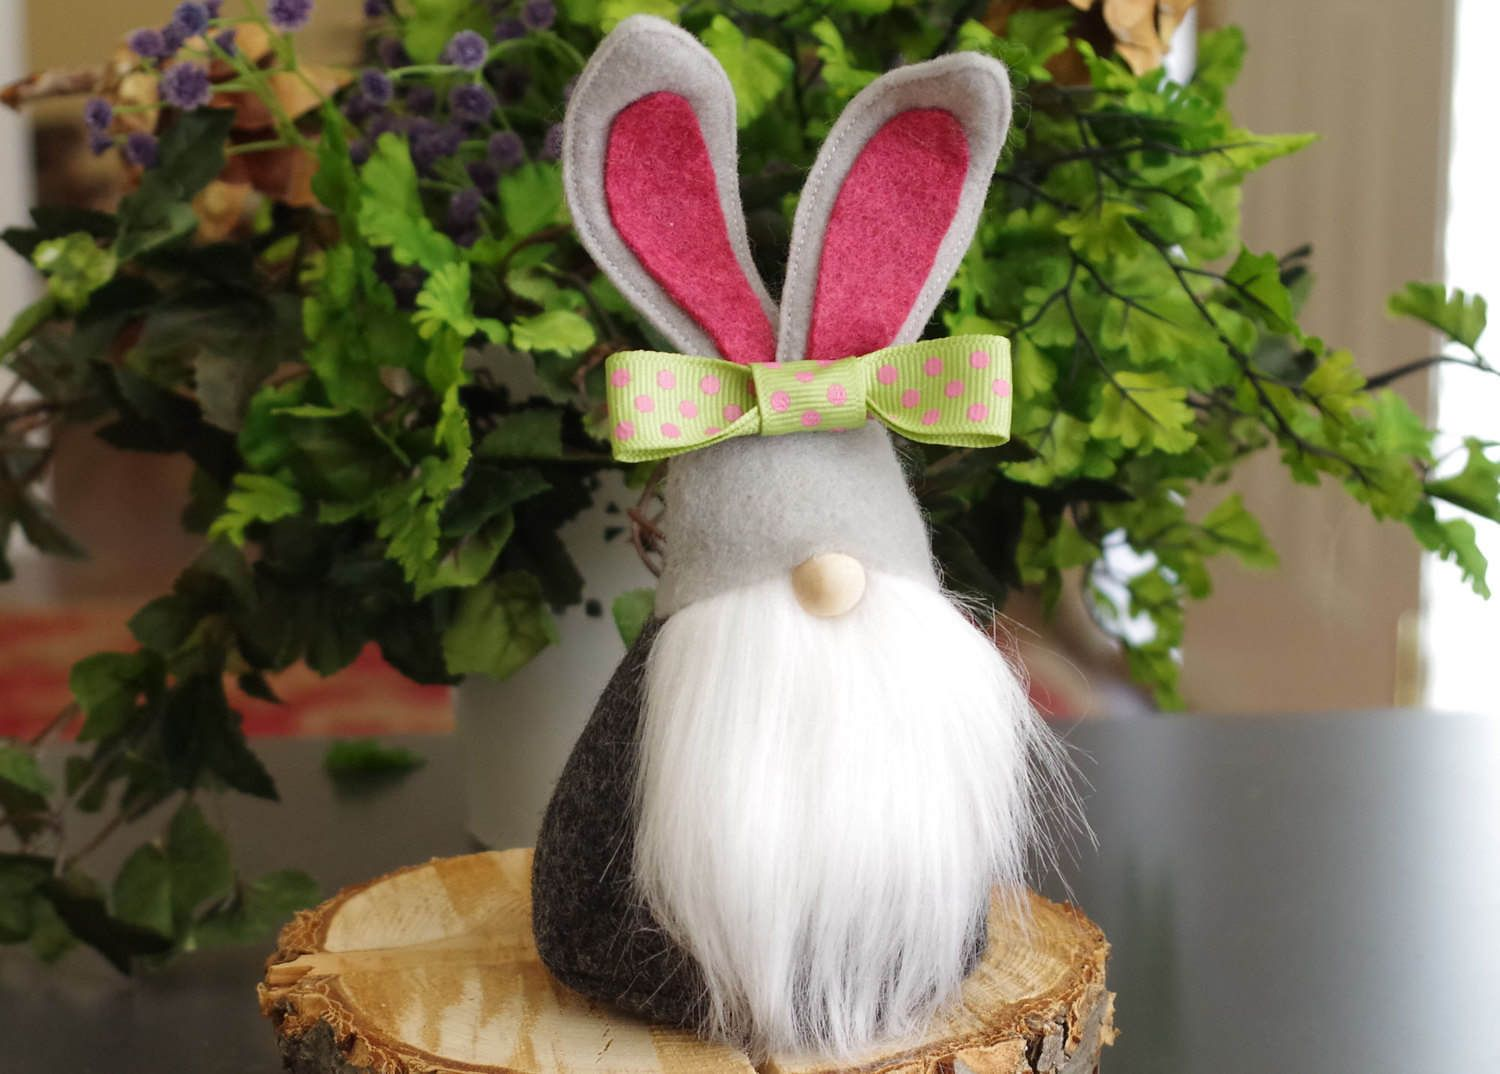 Bunny gnome nordic gnome gifts for her hostess gifts get well bunny gnome nordic gnome gifts for her hostess gifts get well soon gifts woodland gnome scandinavian gnomes by the gnome makers negle Choice Image